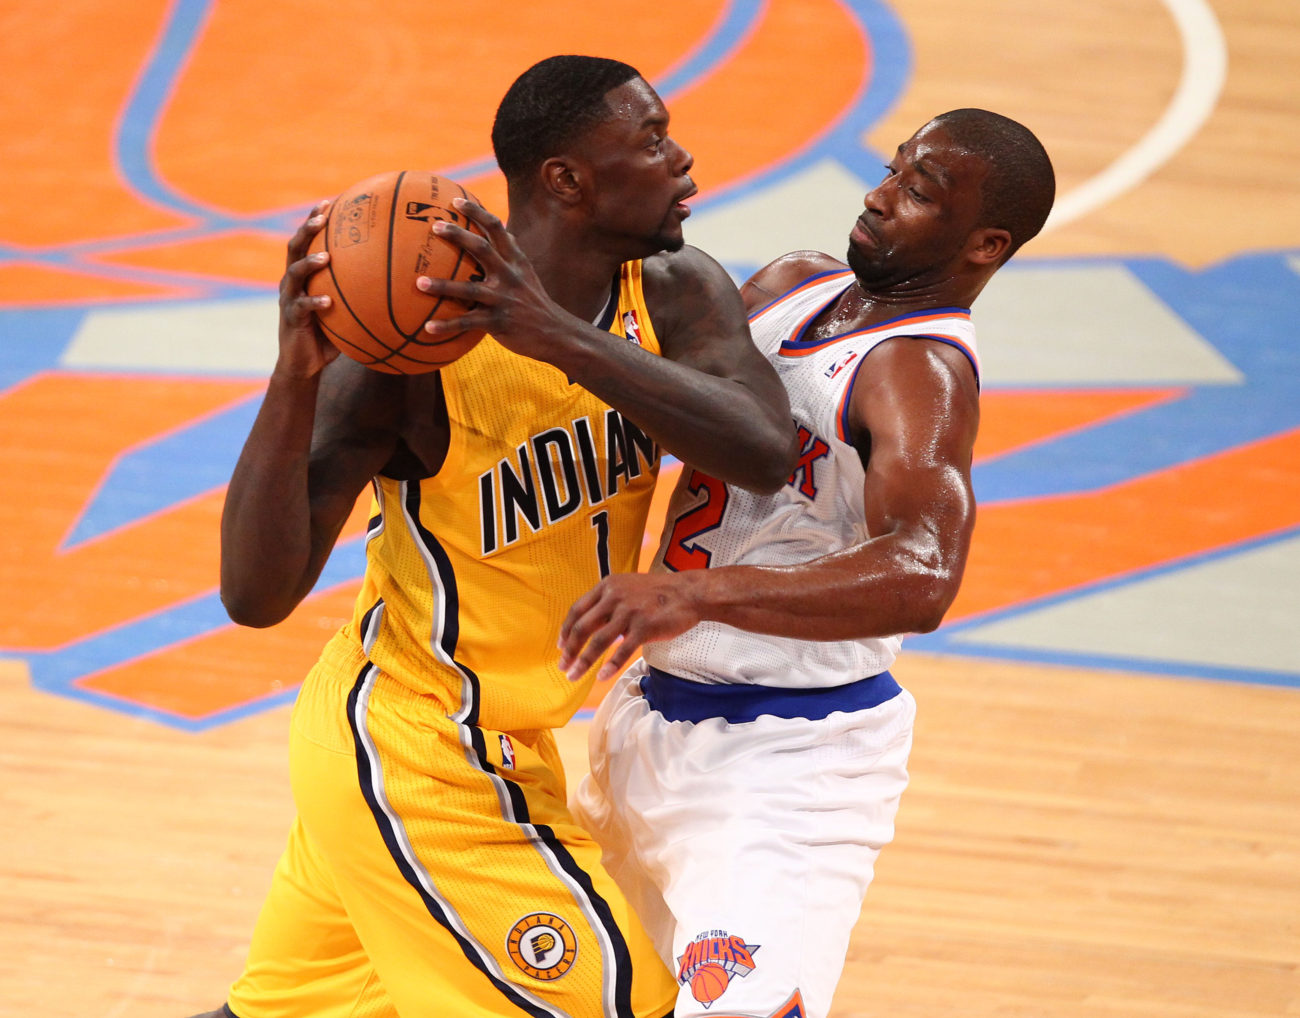 May 5, 2013; New York, NY, USA; Indiana Pacers guard Lance Stephenson (1) is defended by New York Knicks point guard Raymond Felton (2) at Madison Square Garden. Mandatory Credit: Danny Wild-USA TODAY Sports